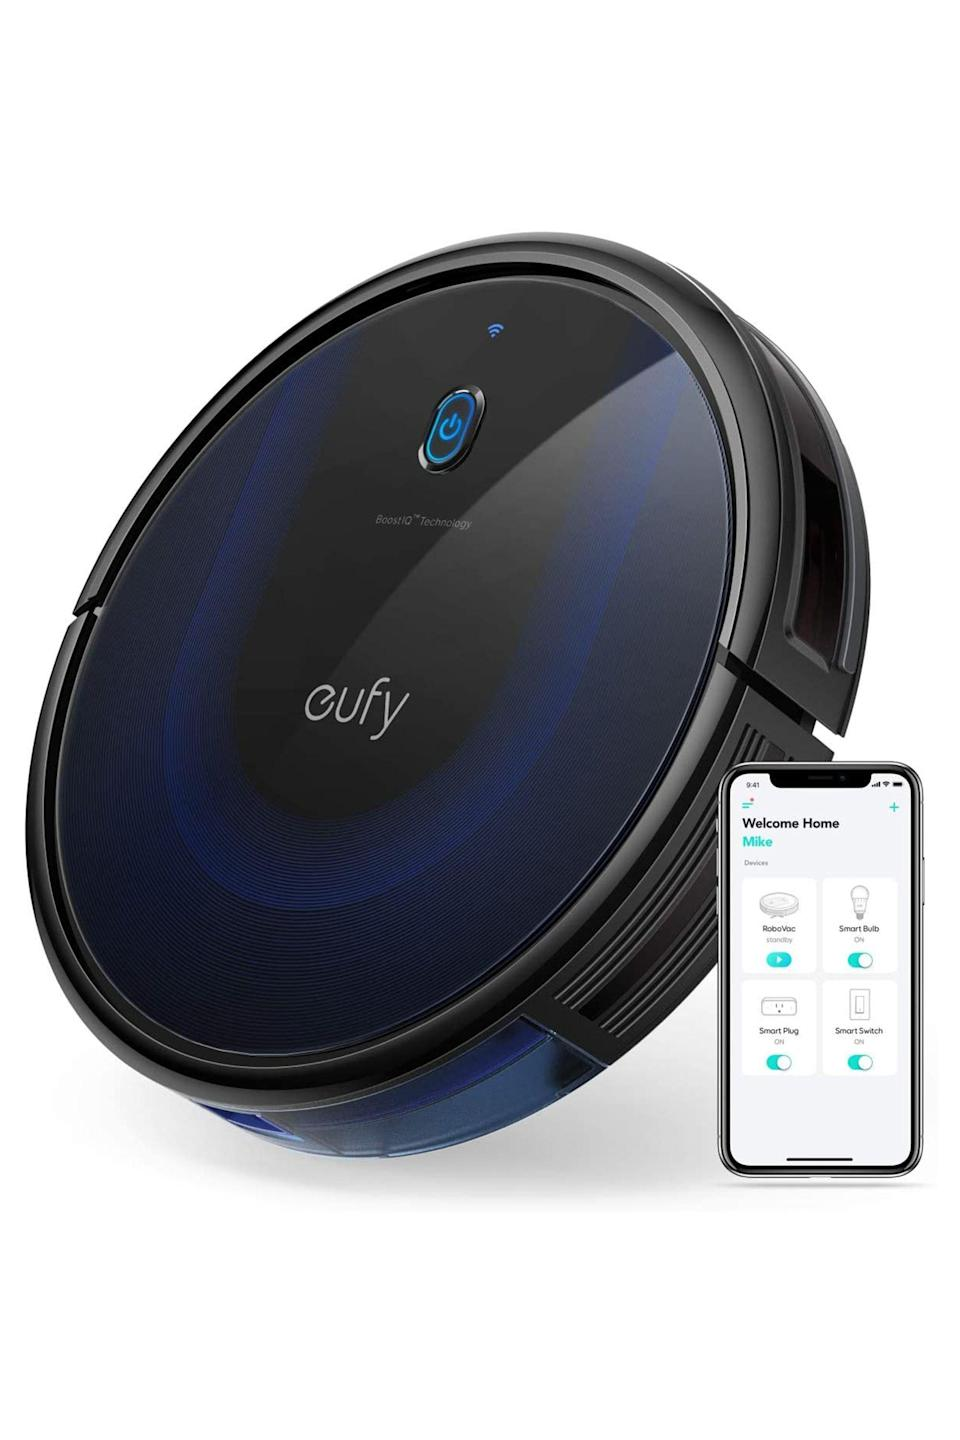 """<p><strong>eufy by Anker</strong></p><p>amazon.com</p><p><strong>$175.99</strong></p><p><a href=""""https://www.amazon.com/dp/B07RGDFZ5Q?tag=syn-yahoo-20&ascsubtag=%5Bartid%7C10063.g.34824549%5Bsrc%7Cyahoo-us"""" rel=""""nofollow noopener"""" target=""""_blank"""" data-ylk=""""slk:Shop Now"""" class=""""link rapid-noclick-resp"""">Shop Now</a></p><p>It's hard to come by a list of best robot vacuums online (written by experts who actually tested hundreds of models) where eufy's RoboVac 15C MAX isn't included as a budget-friendly mention. The RoboVac 15C MAX has wifi and Alexa voice connectivity, which makes it easy breezy to set up and use. Reviewers love how it delivers an impressive clean with strong suction and self-charges after a clean. </p>"""